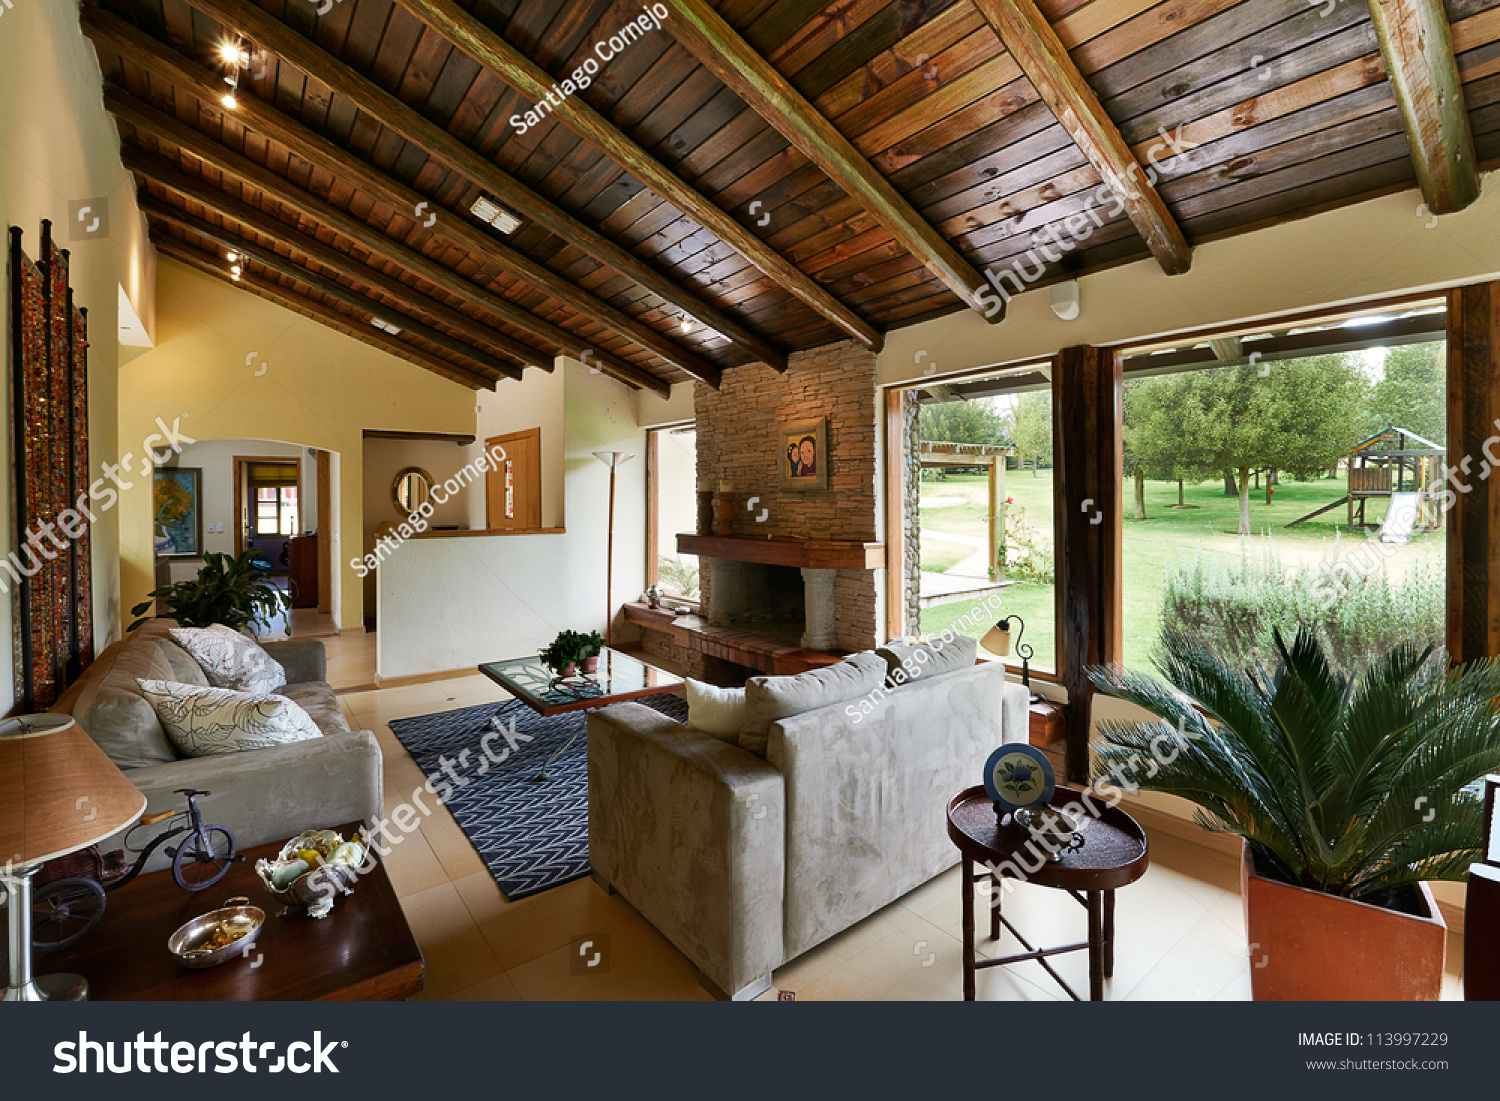 Interior design series classic rustic living stock photo for Interior design living room rustic